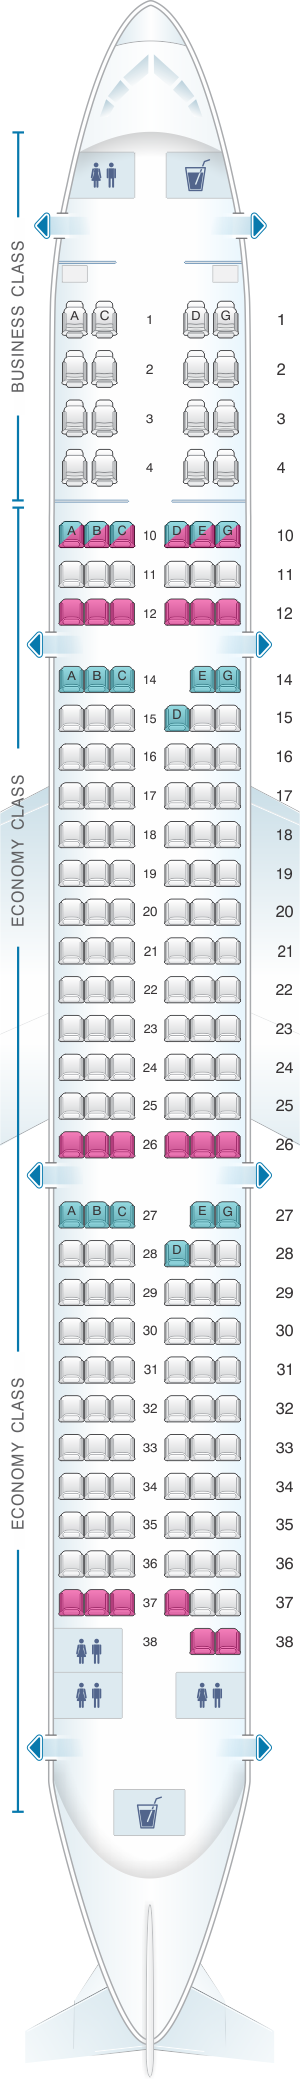 Seat map for Vietnam Airlines Airbus A321 Config.1